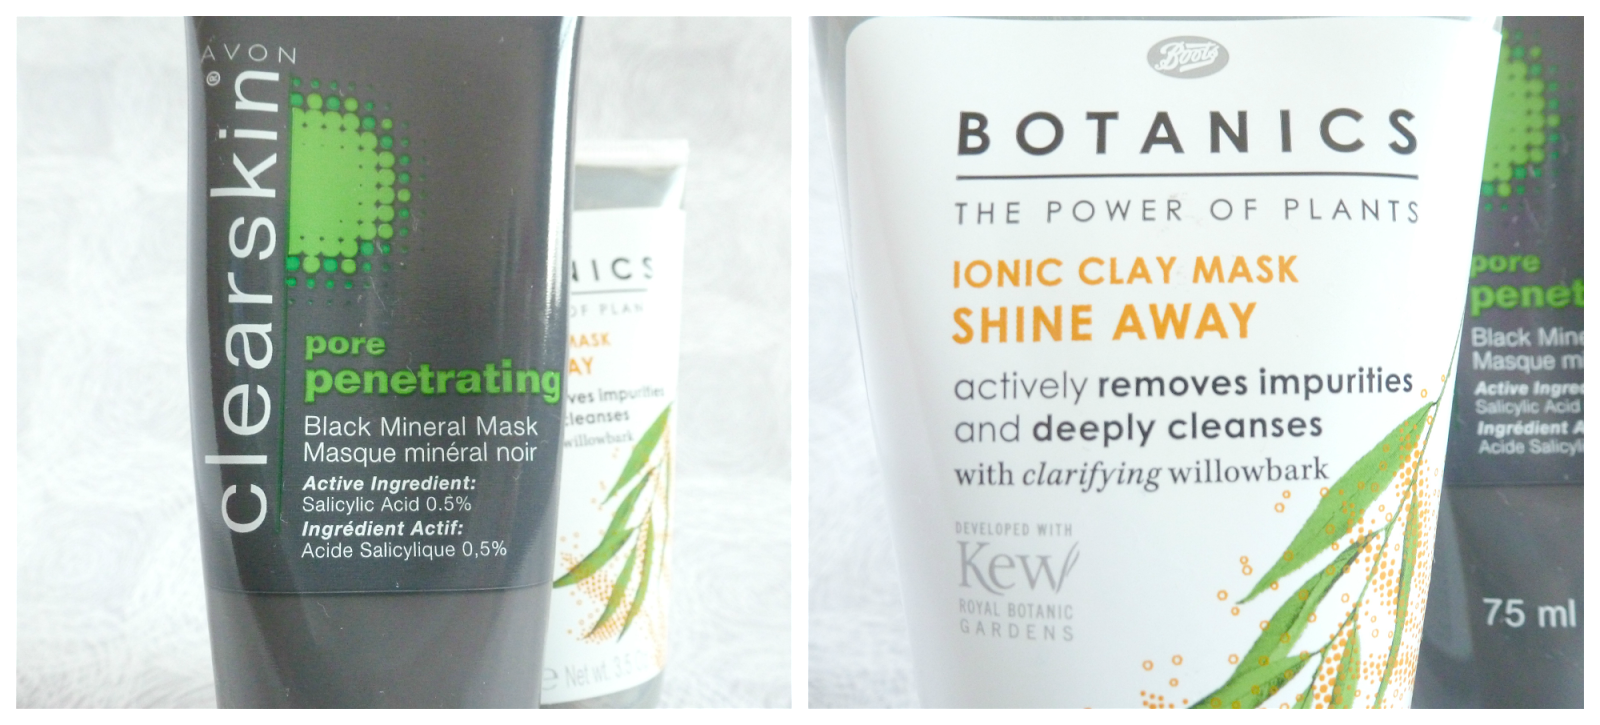 Avon clearskin pore penetrating mineral face mask and Boots Botanics iconic clay mask